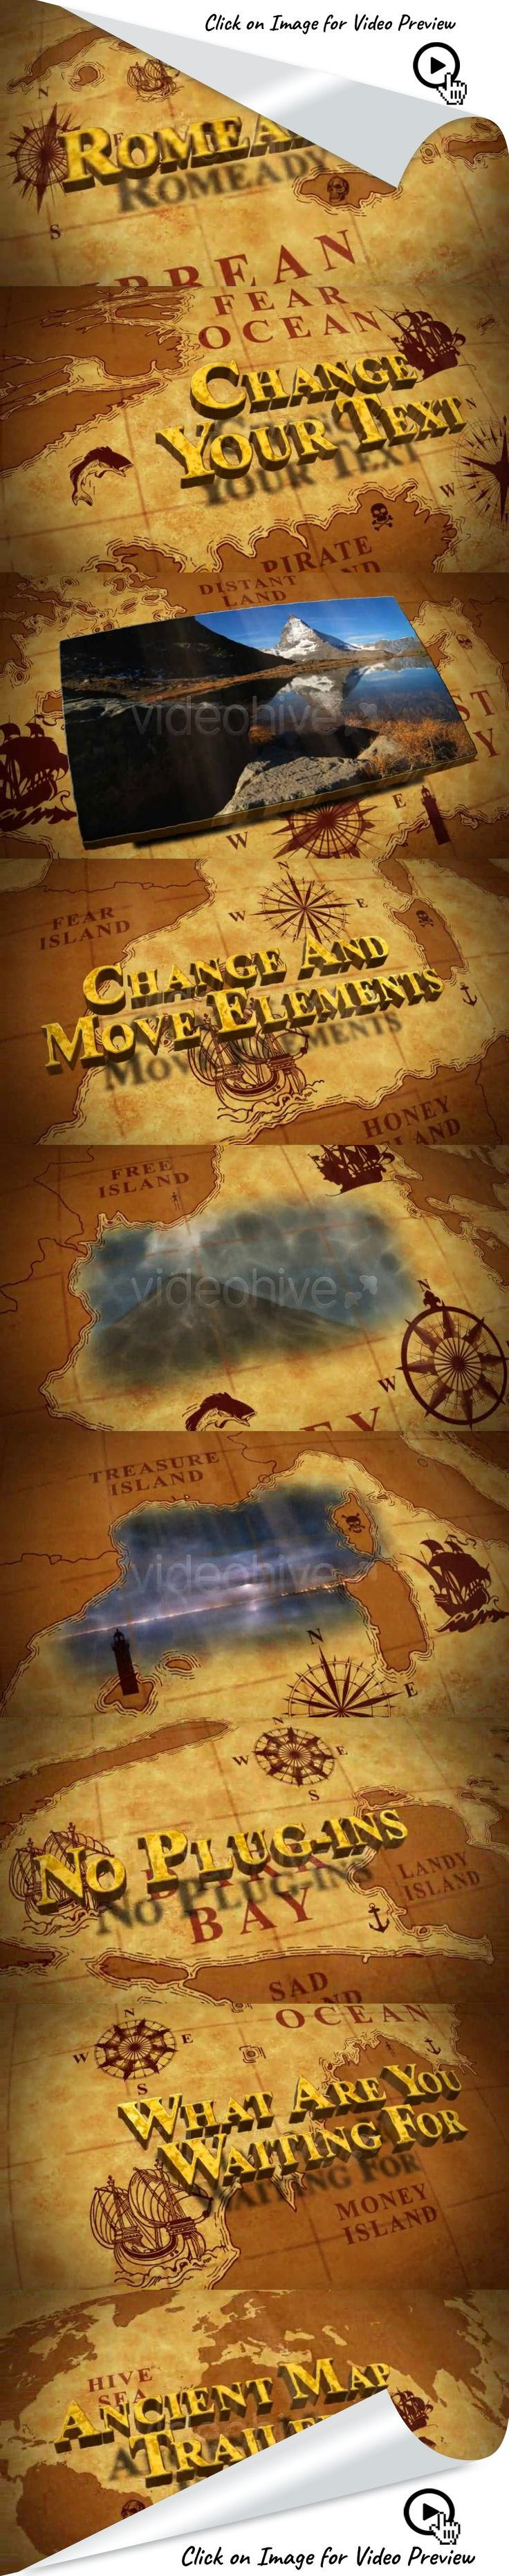 ancient, display, film, grunge, map, movie, old, photo, pirate, presentation, promo, texture, trailer, video, yellow, after effects templates, after effects ideas, after effects motion graphics, after effects projects, videohive projects This is great for a film trailer or presentation.   Main features:  Adobe After Effects CS5  and above HD resolution 1920×1080 4 different render resolution comps set for you (HD 1080, HD 720, PAL, NTSC) No plug-ins required 2:15 long (can be changed e...